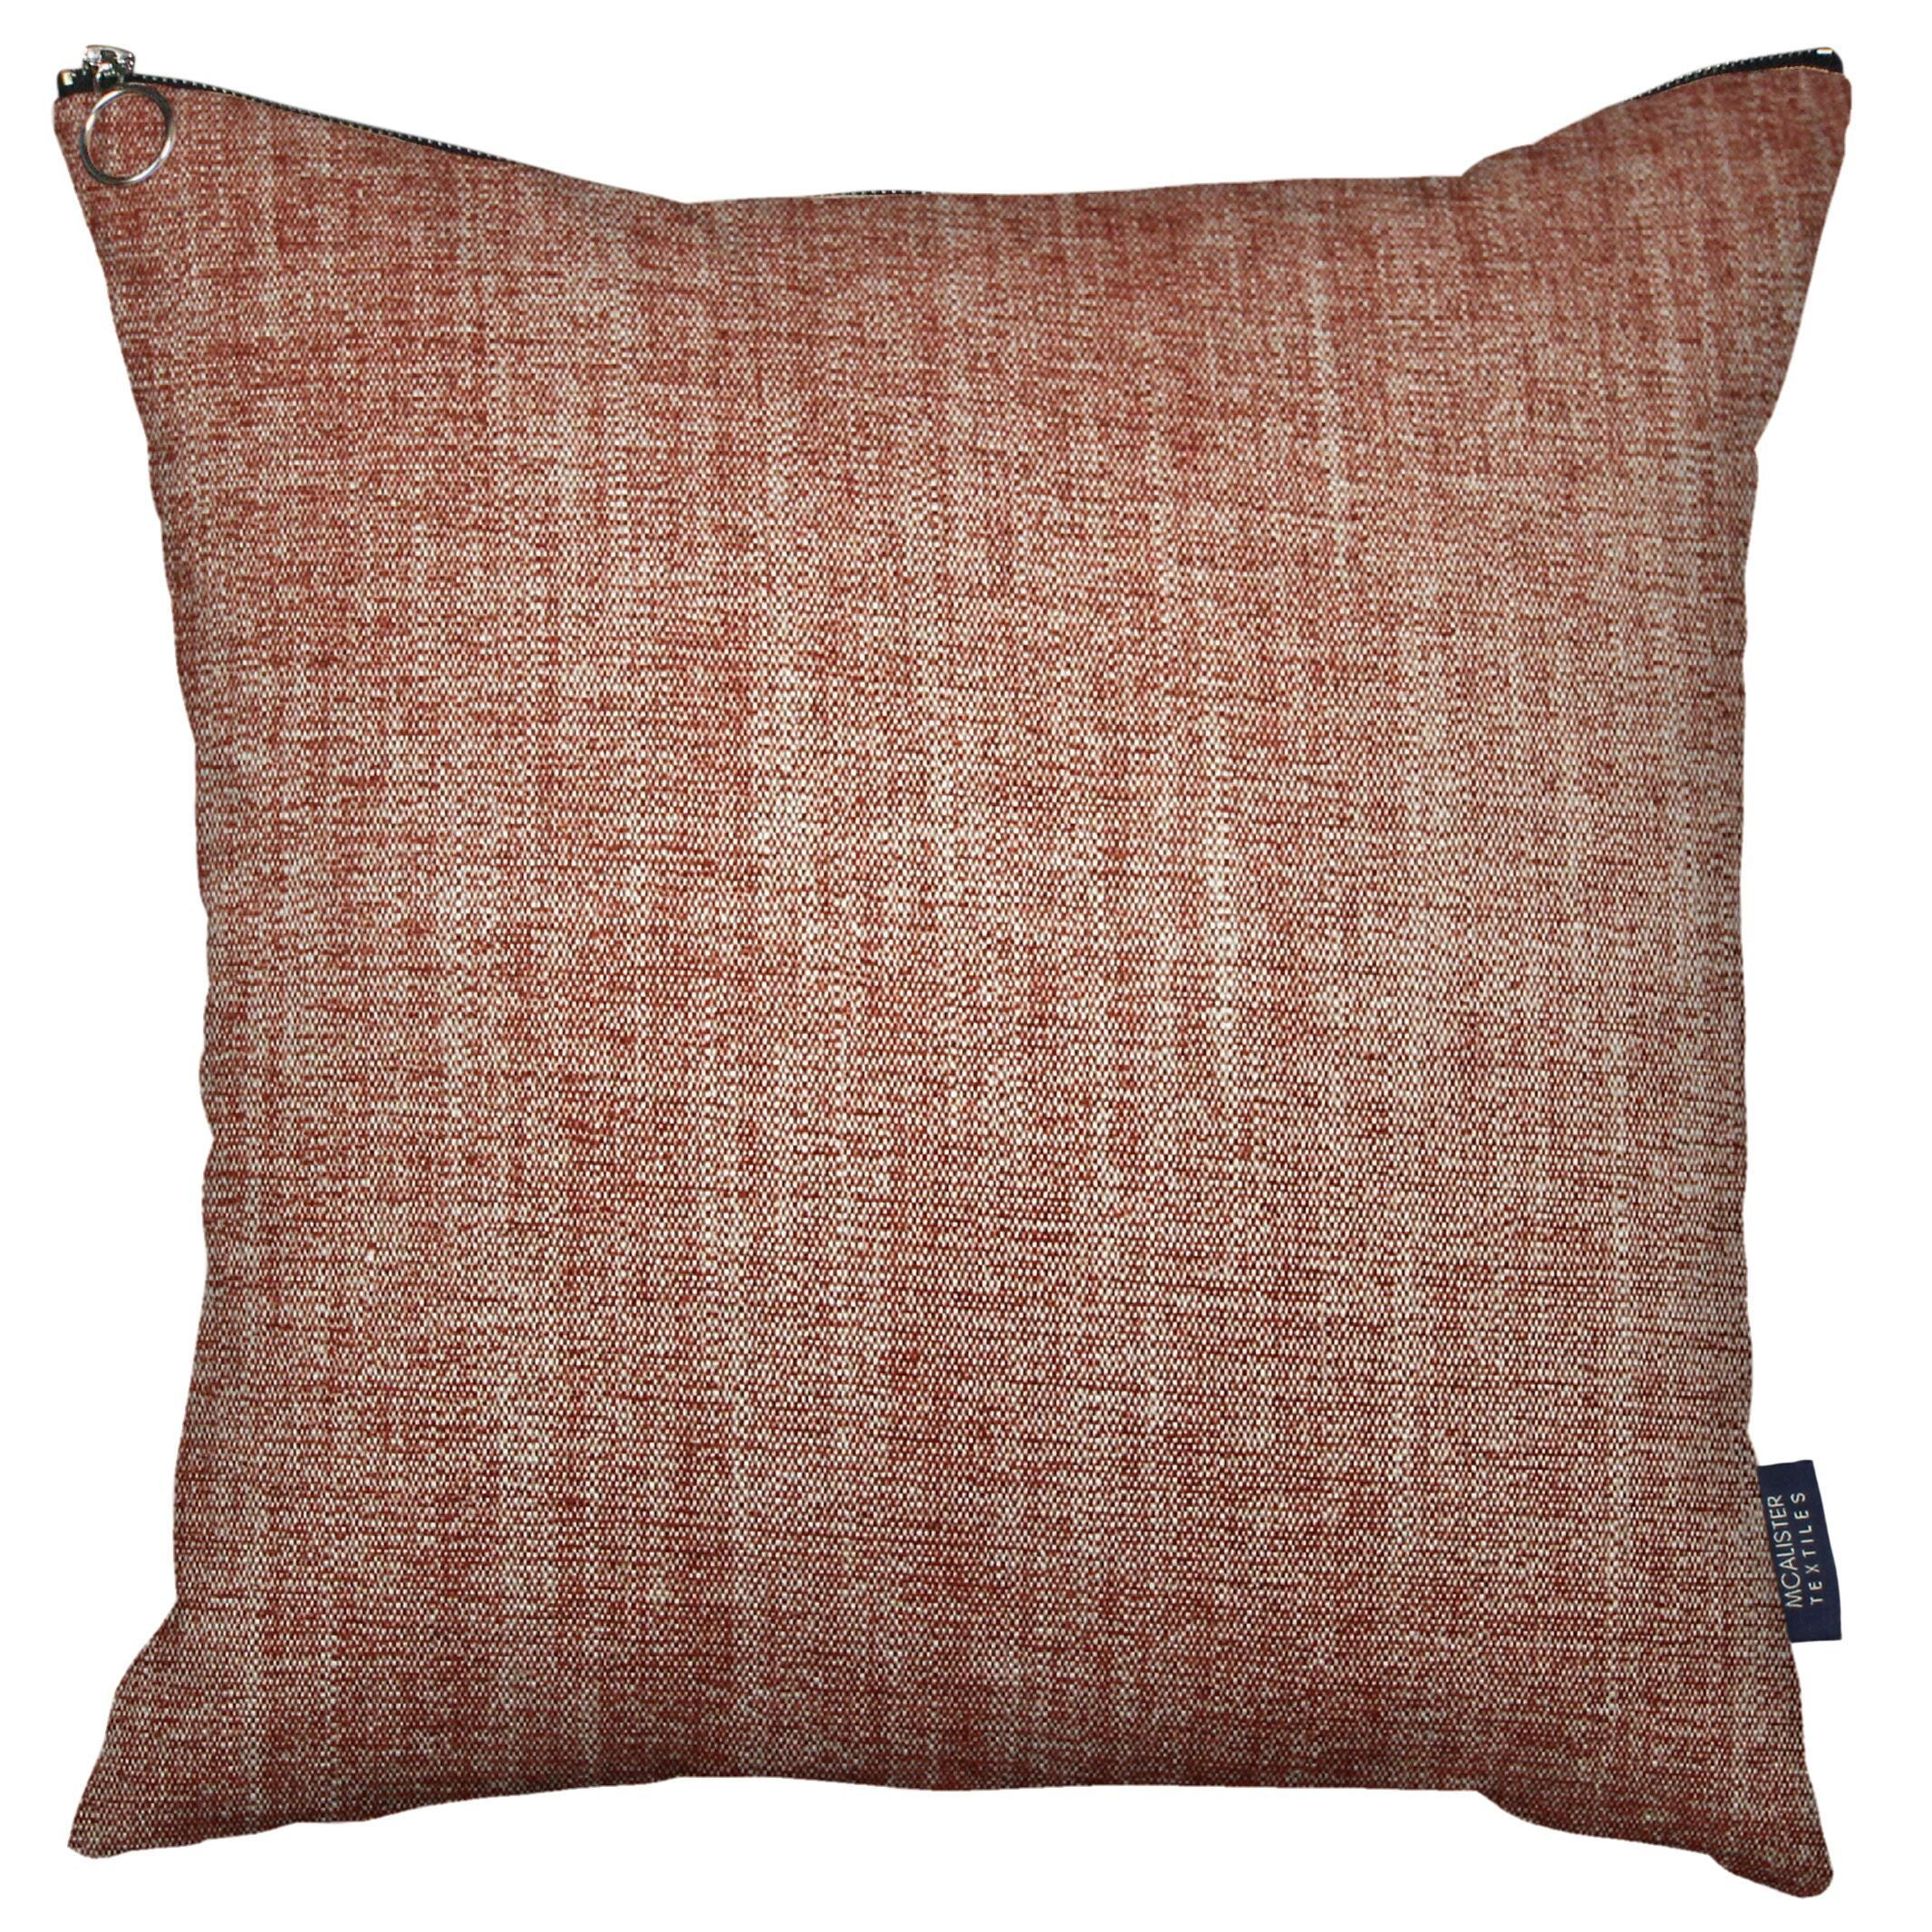 McAlister Textiles Rhumba Zipper Edge Burnt Orange Linen Cushion Cushions and Covers Cover Only 43cm x 43cm